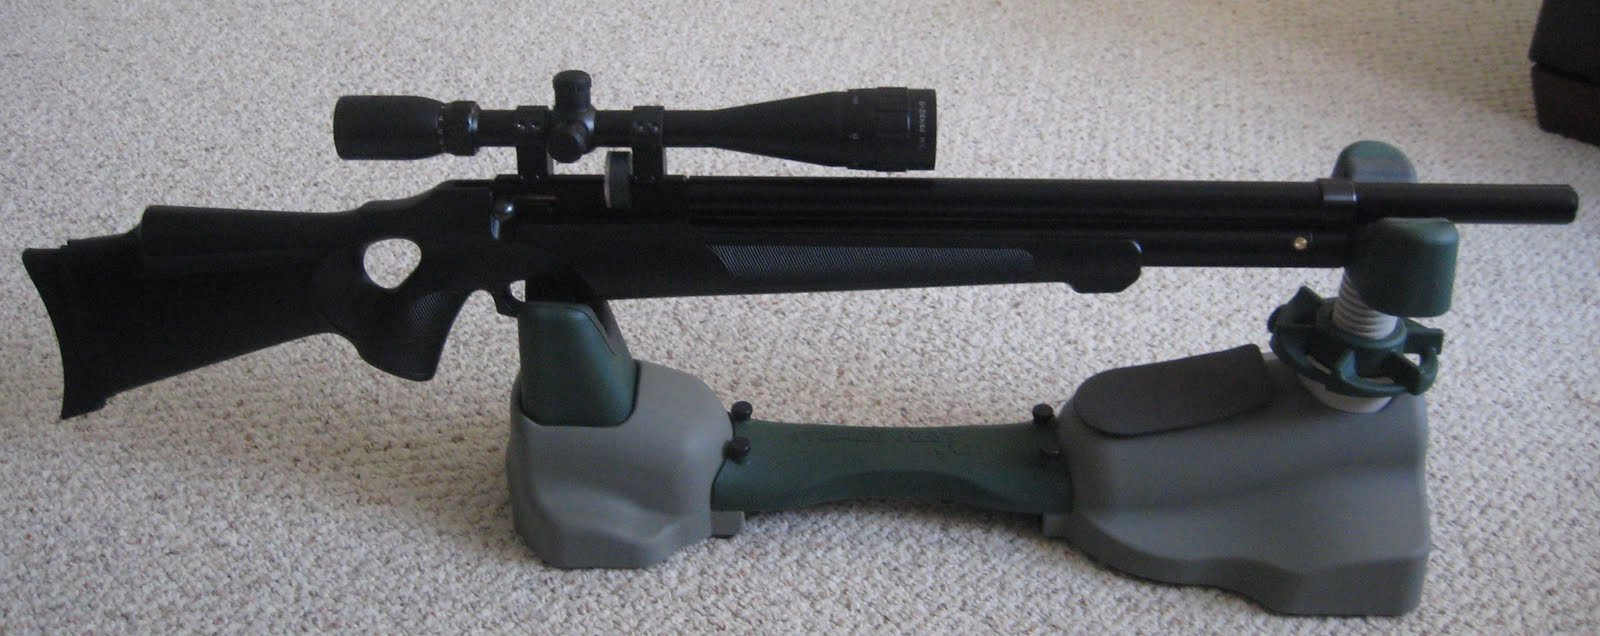 North American Airguns: FX Whisper